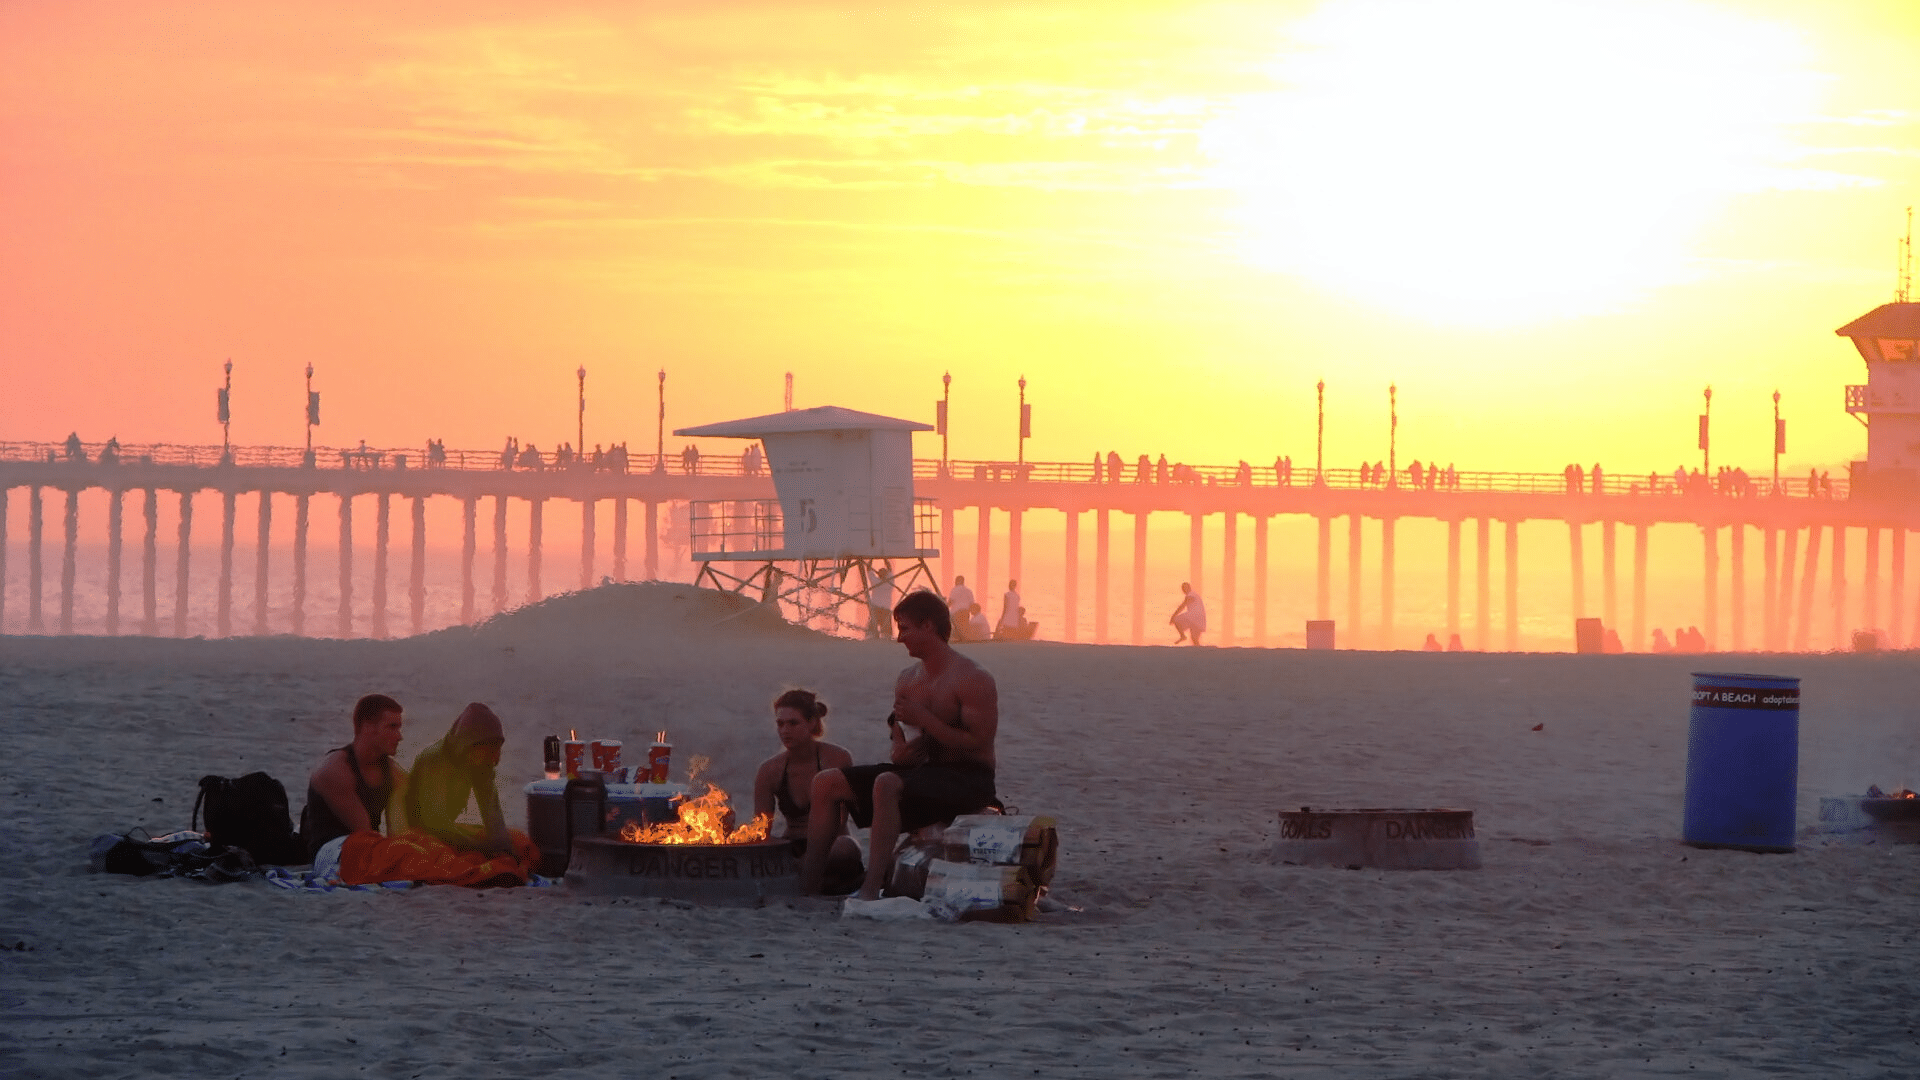 friends gathering close on the beach